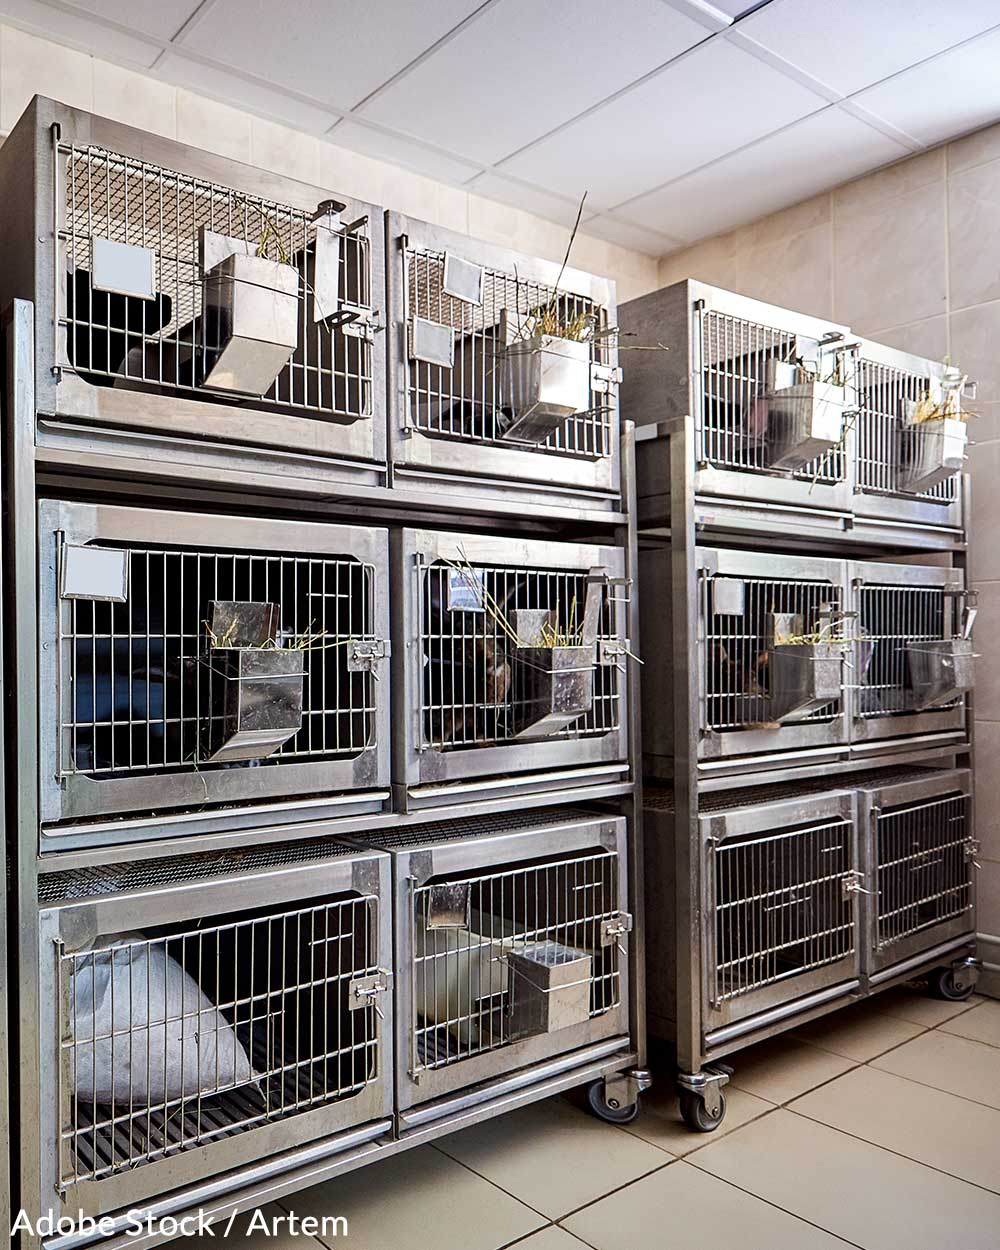 Millions of animals are killed every year in cosmetics testing procedures.